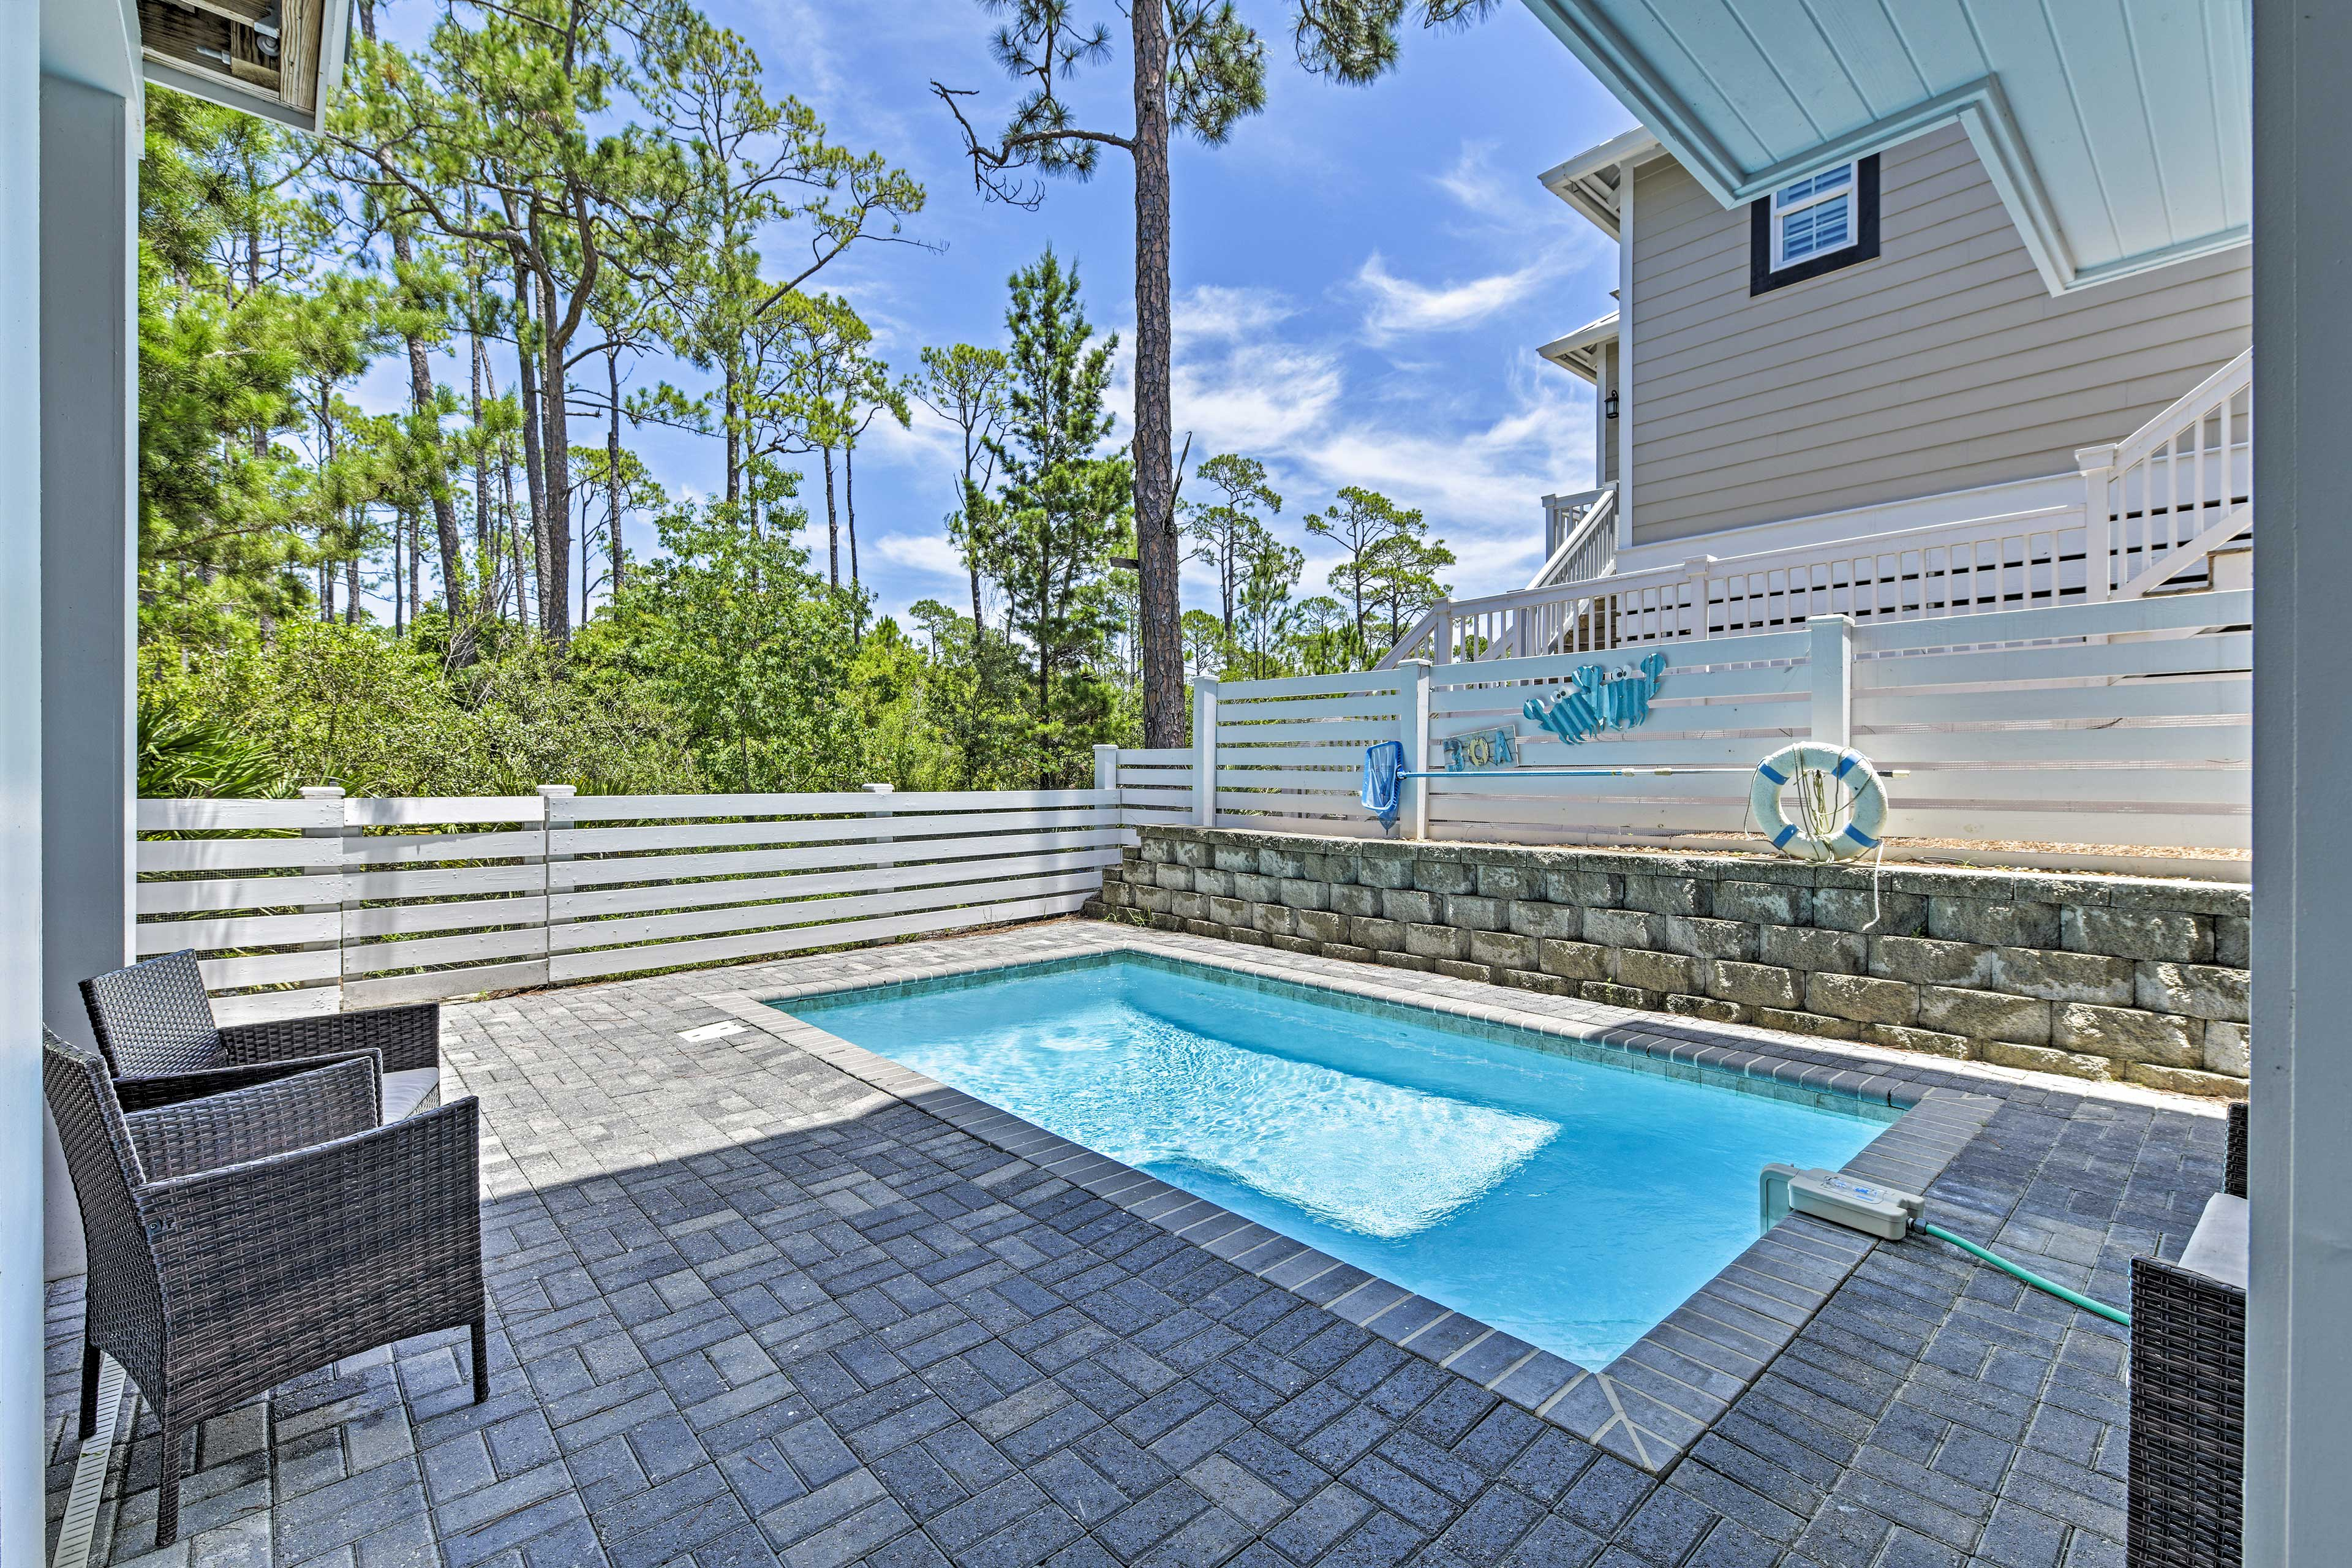 The pool can be heated for an additional fee.